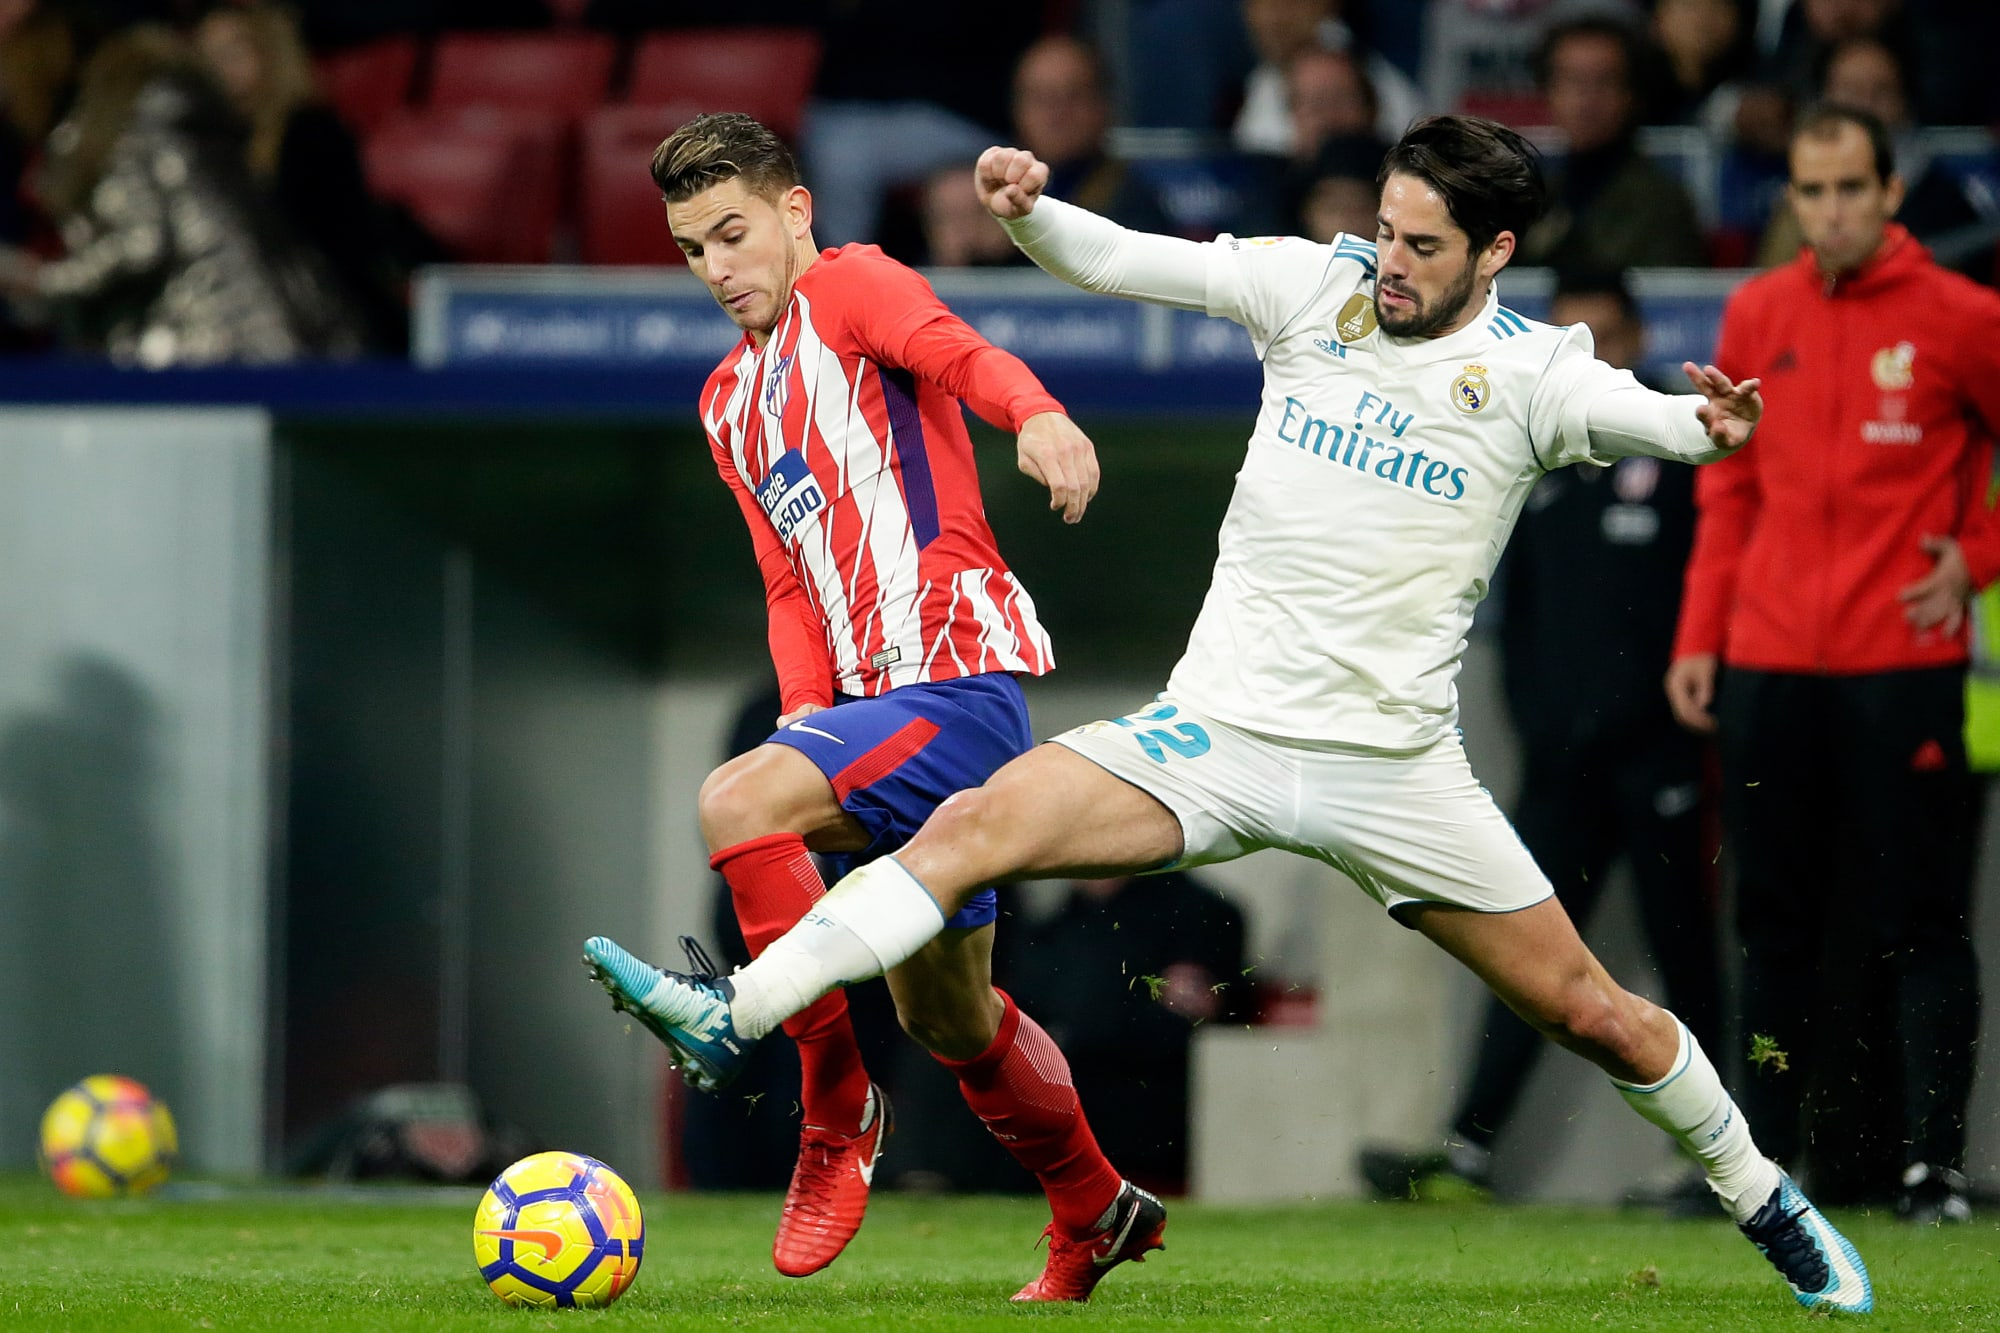 Atletico Madrid 0 - Real Madrid 0: Quick recap of the ...